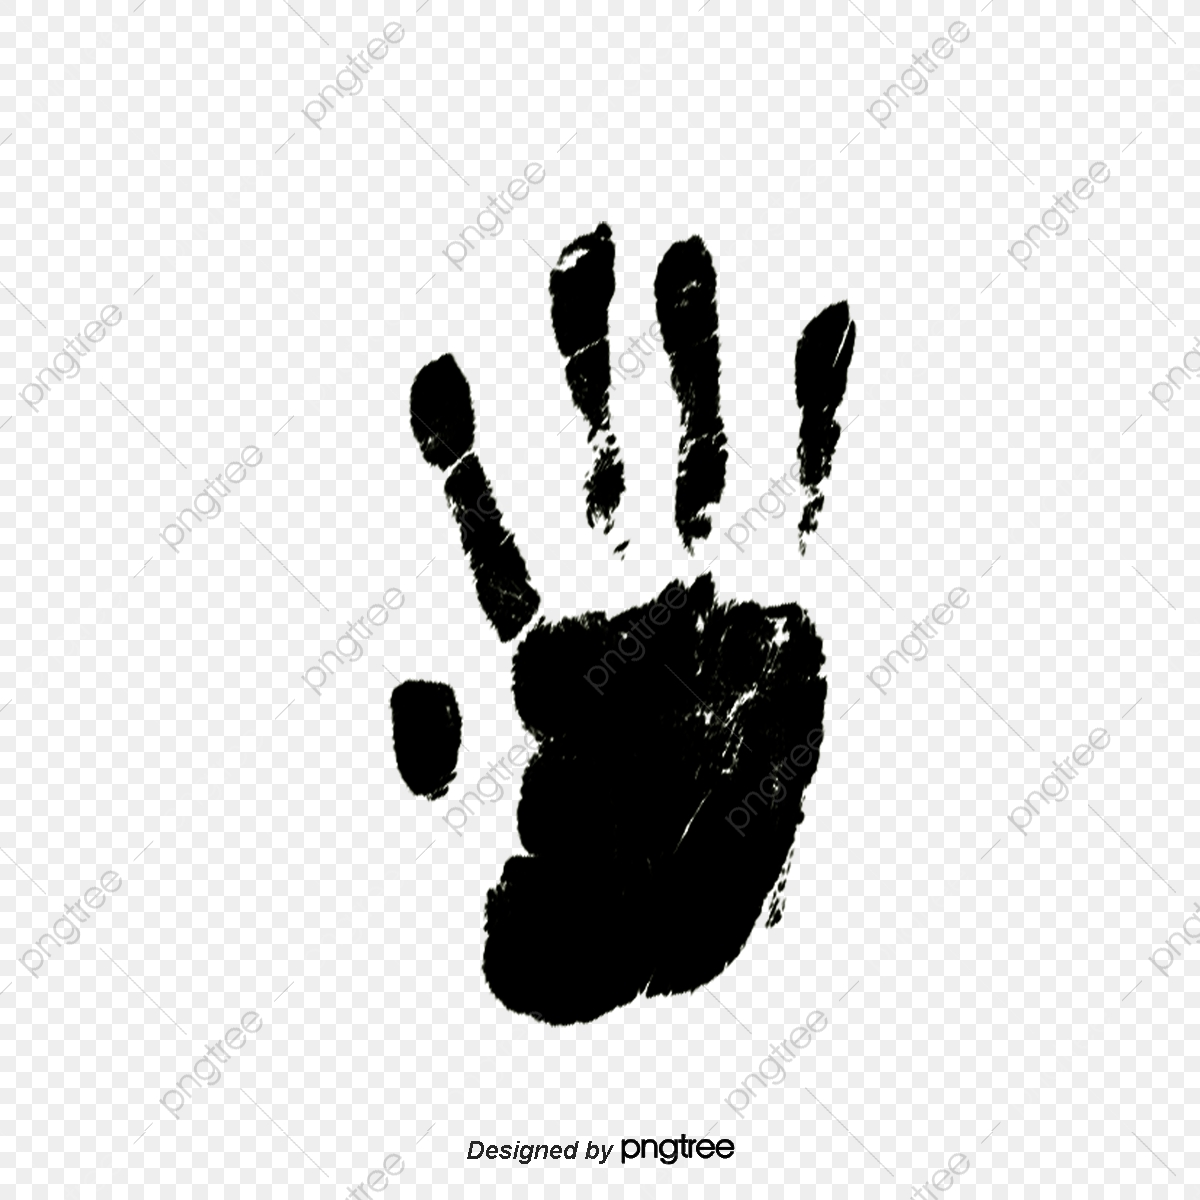 Hand Print PNG Transparent For Free Download - PngFind